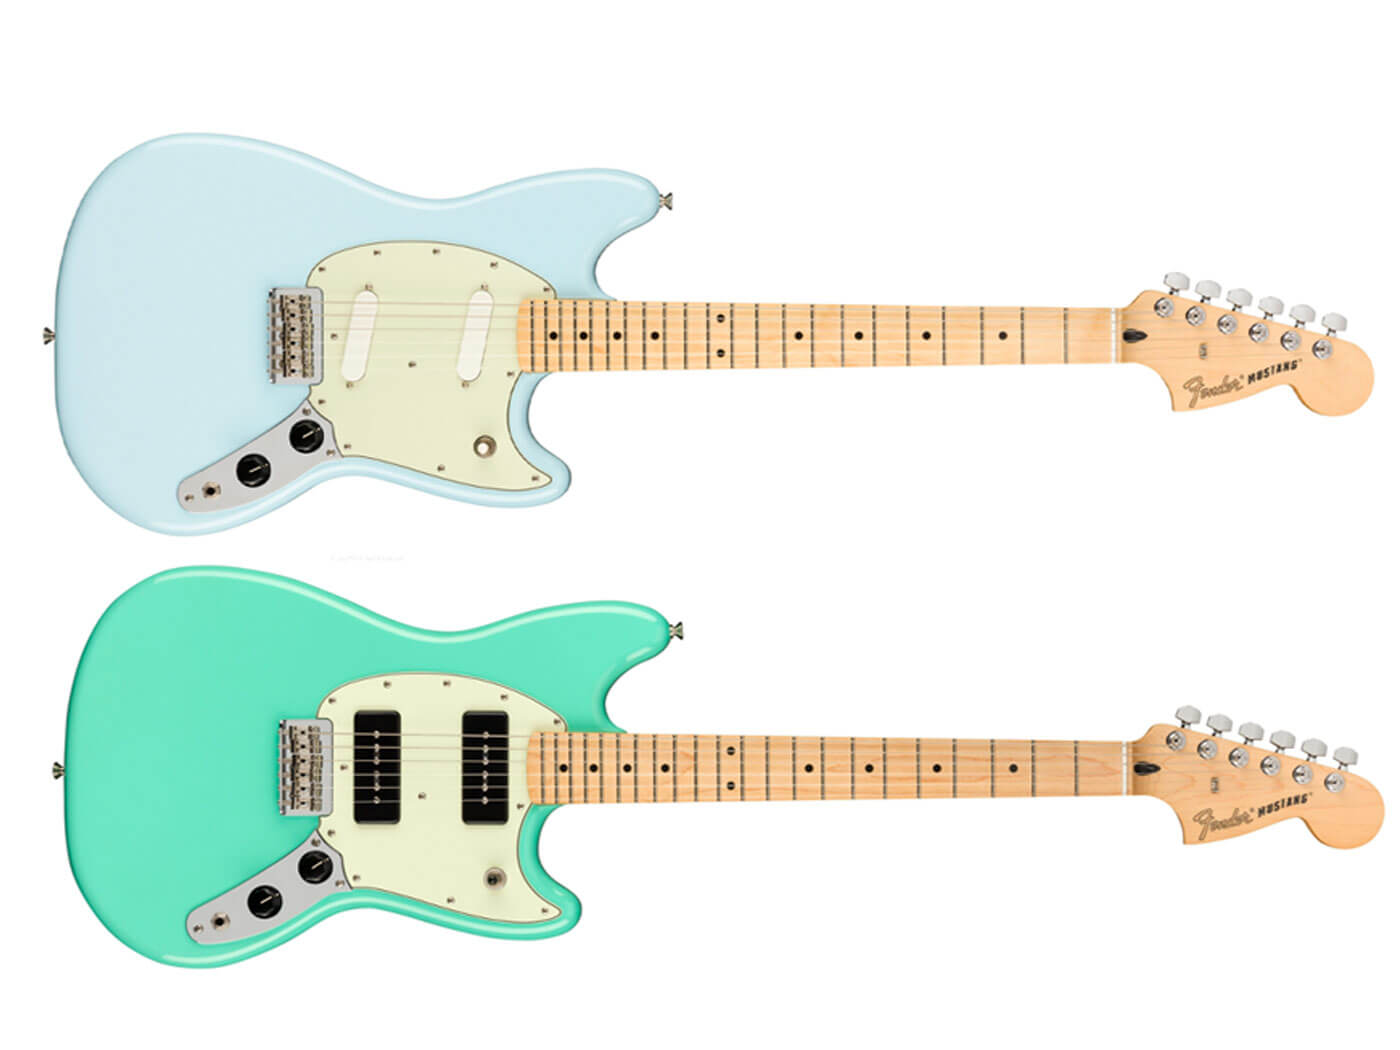 The Fender Player Mustang